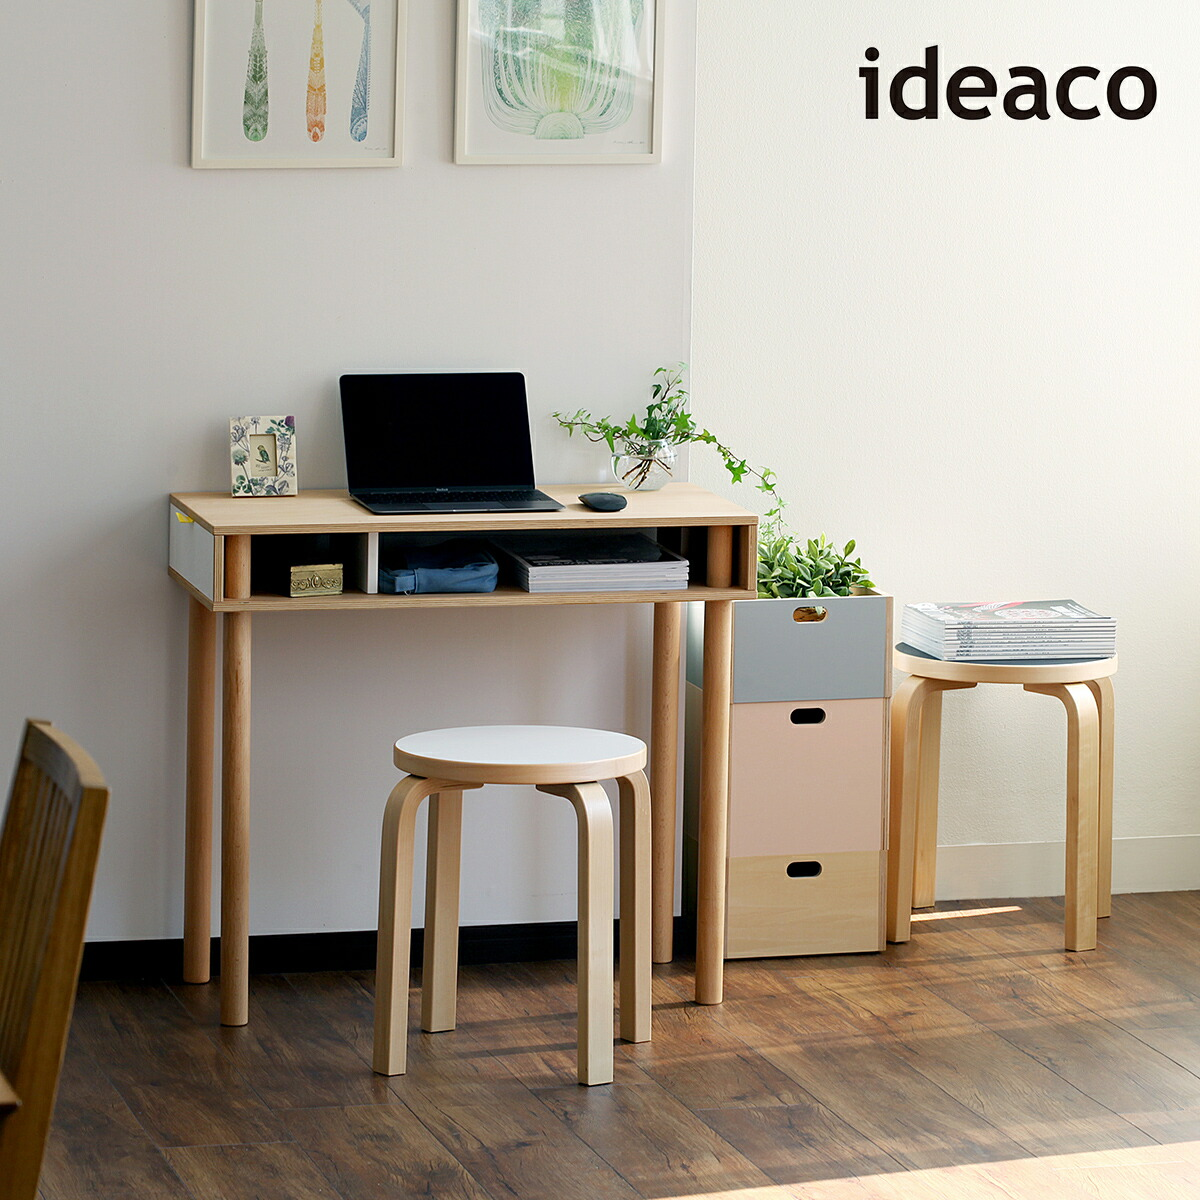 ideaco PLYWOOD series Pallet PCH / イデアコ プライウッドシリーズ パレット PCH